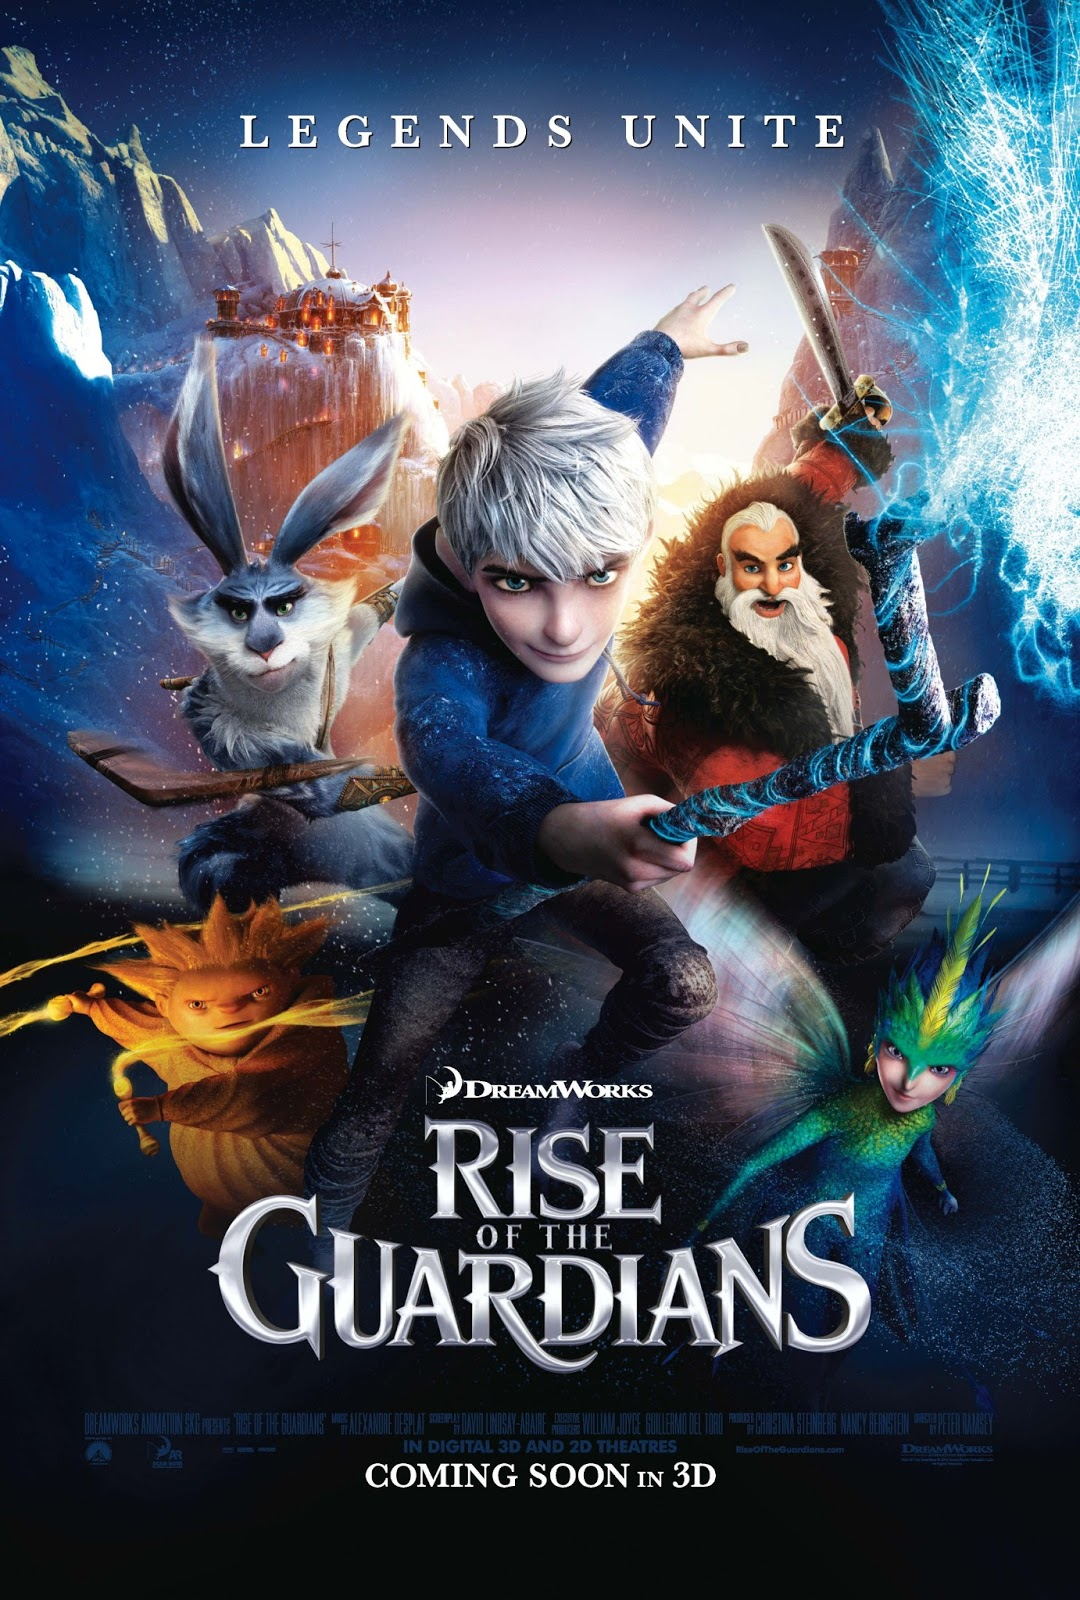 The RetroCritic: RISE OF THE GUARDIANS - REVIEW